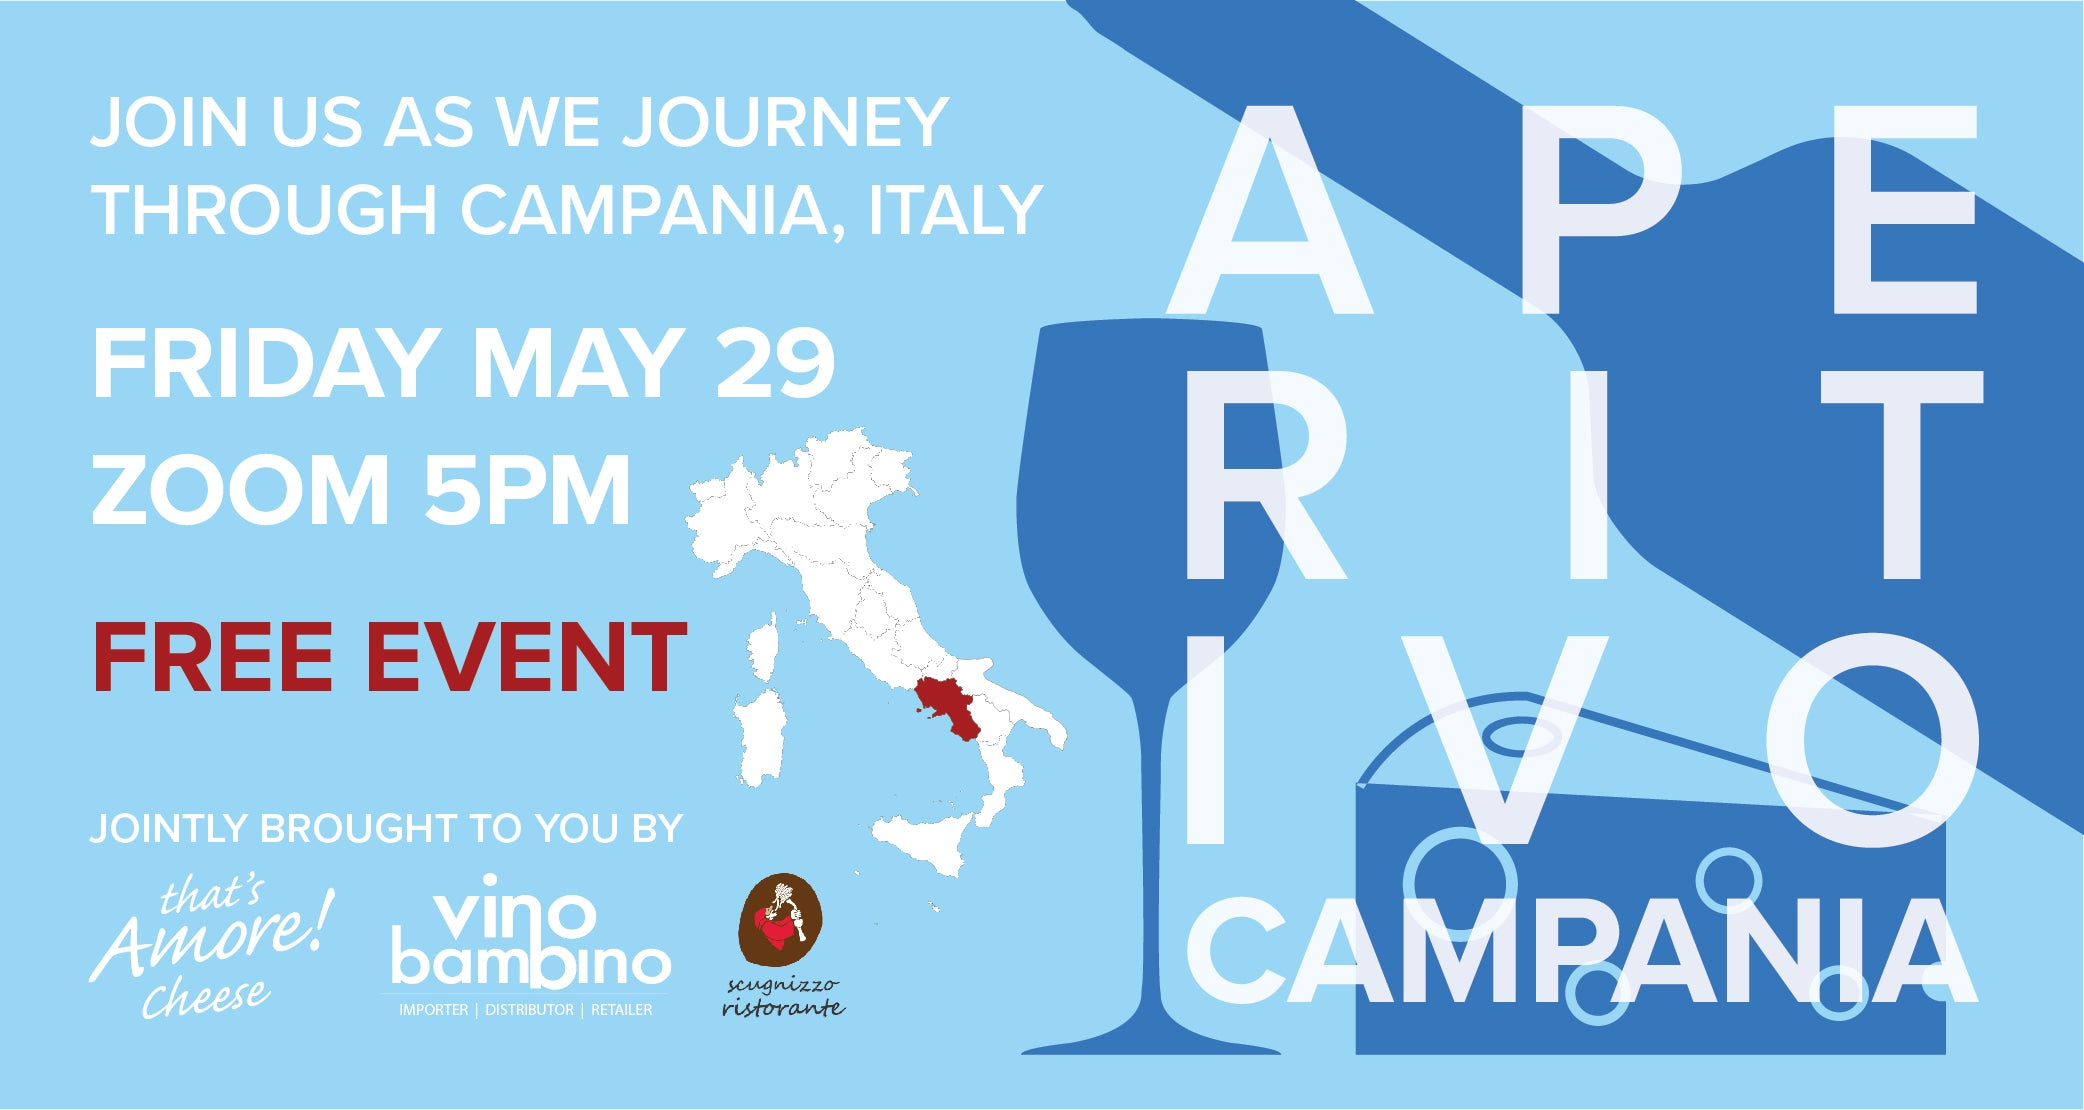 Free Event: We're going to Napoli! - Aperitivo Friday 29th May, 5pm